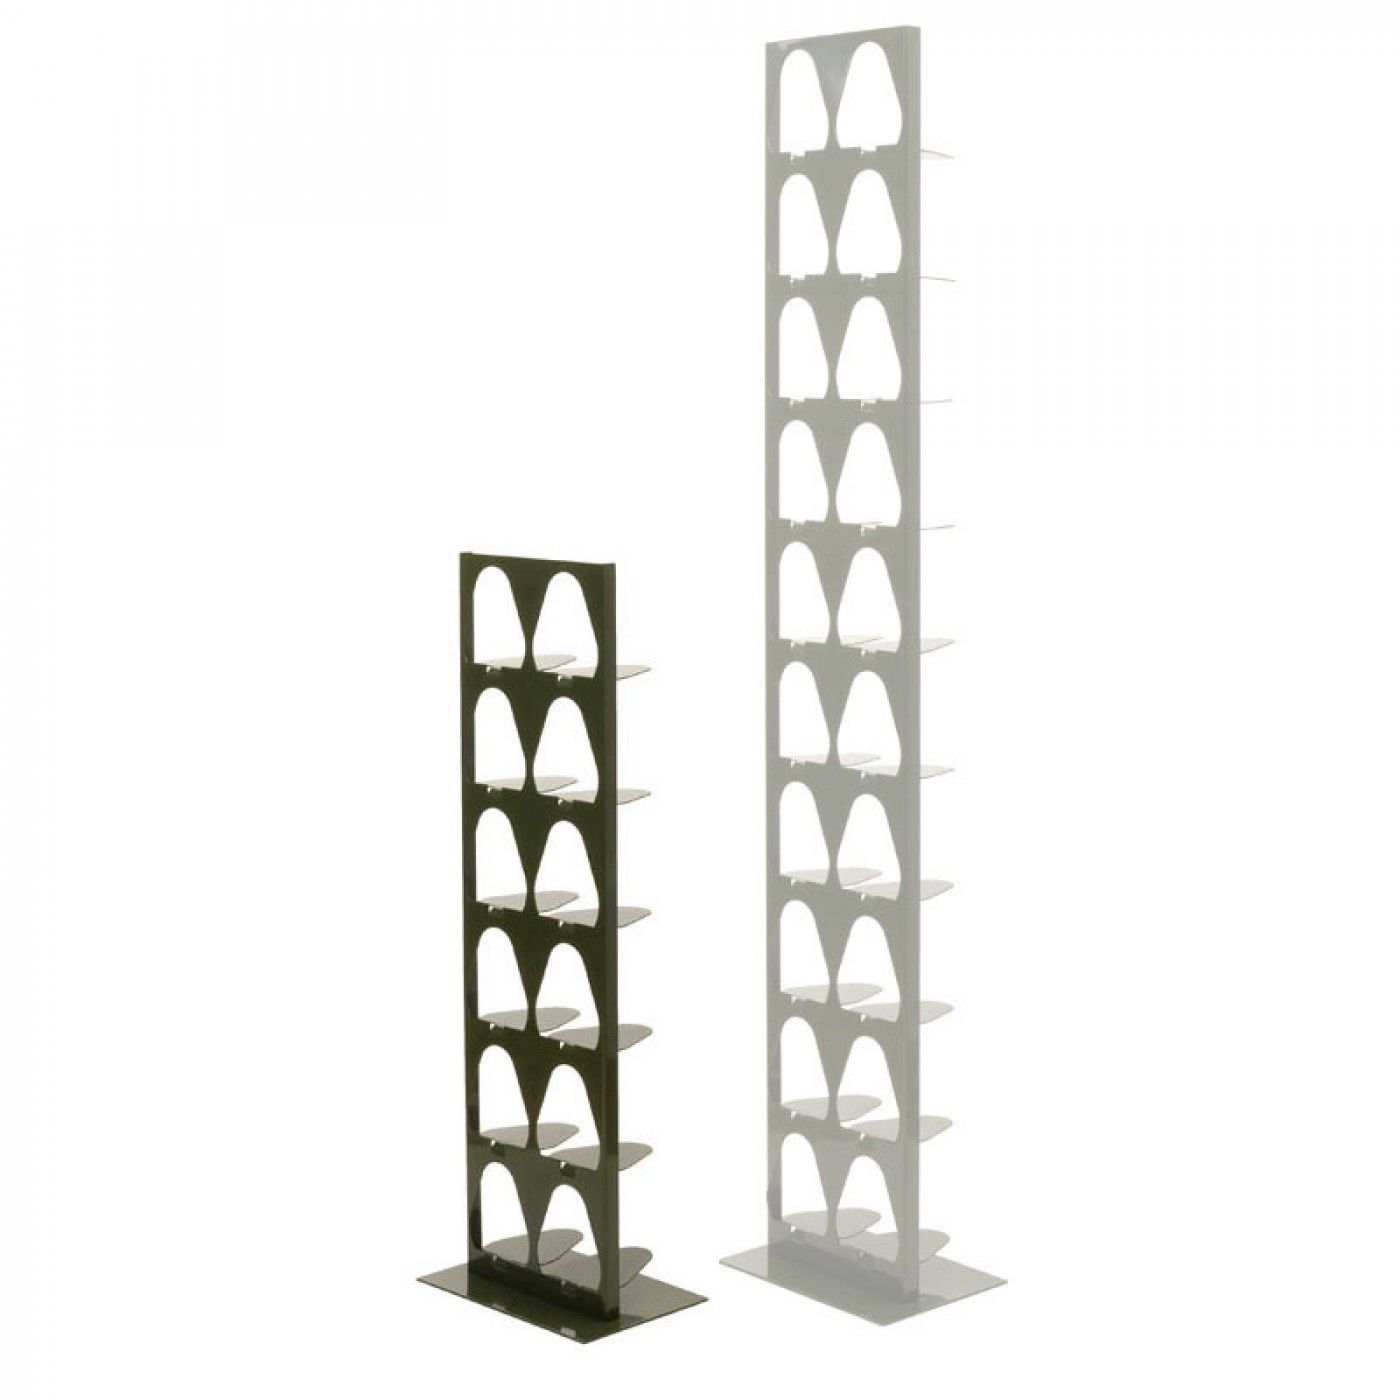 Perigot Design Utilitaire Shoes Rack Colombage Vertical Small Site Officiel Narrow Shoe Rack Narrow Shoes Shoe Rack